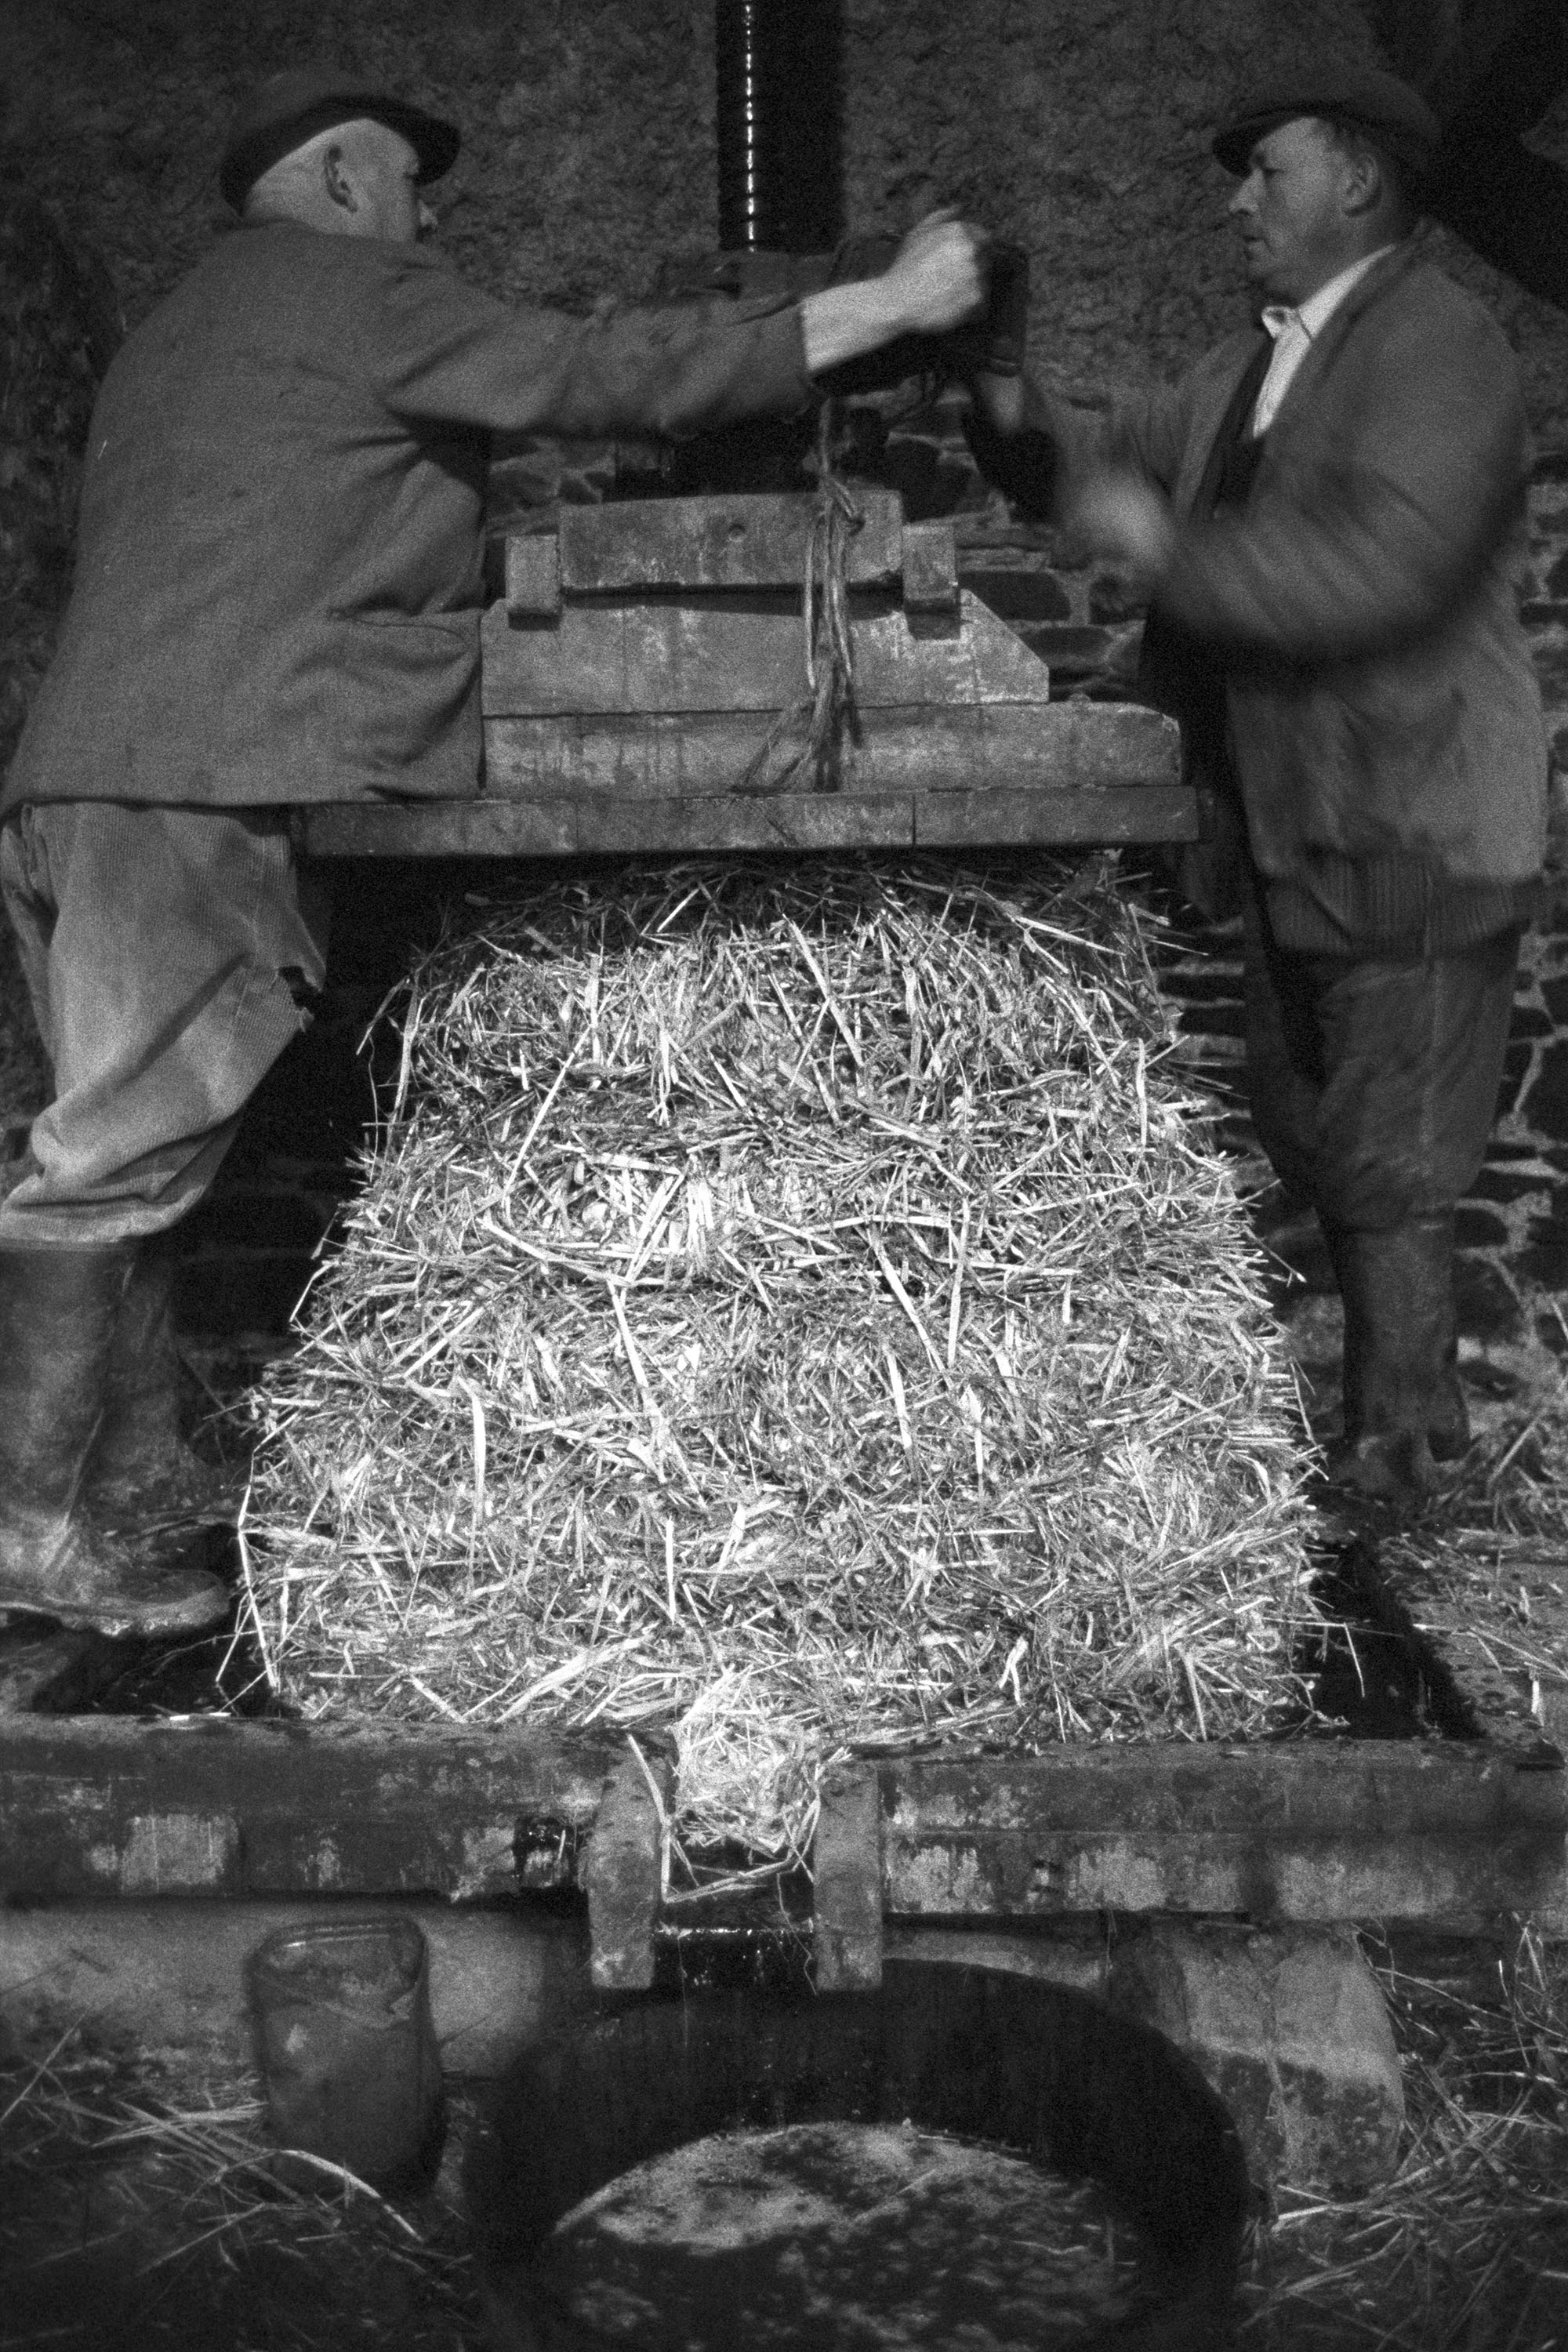 Men using cider press, using straw cheese.<br /> [Albert Eastman and John Eastman working a cider press at Hacknell, Burrington. They are pressing cider through a straw cheese ]